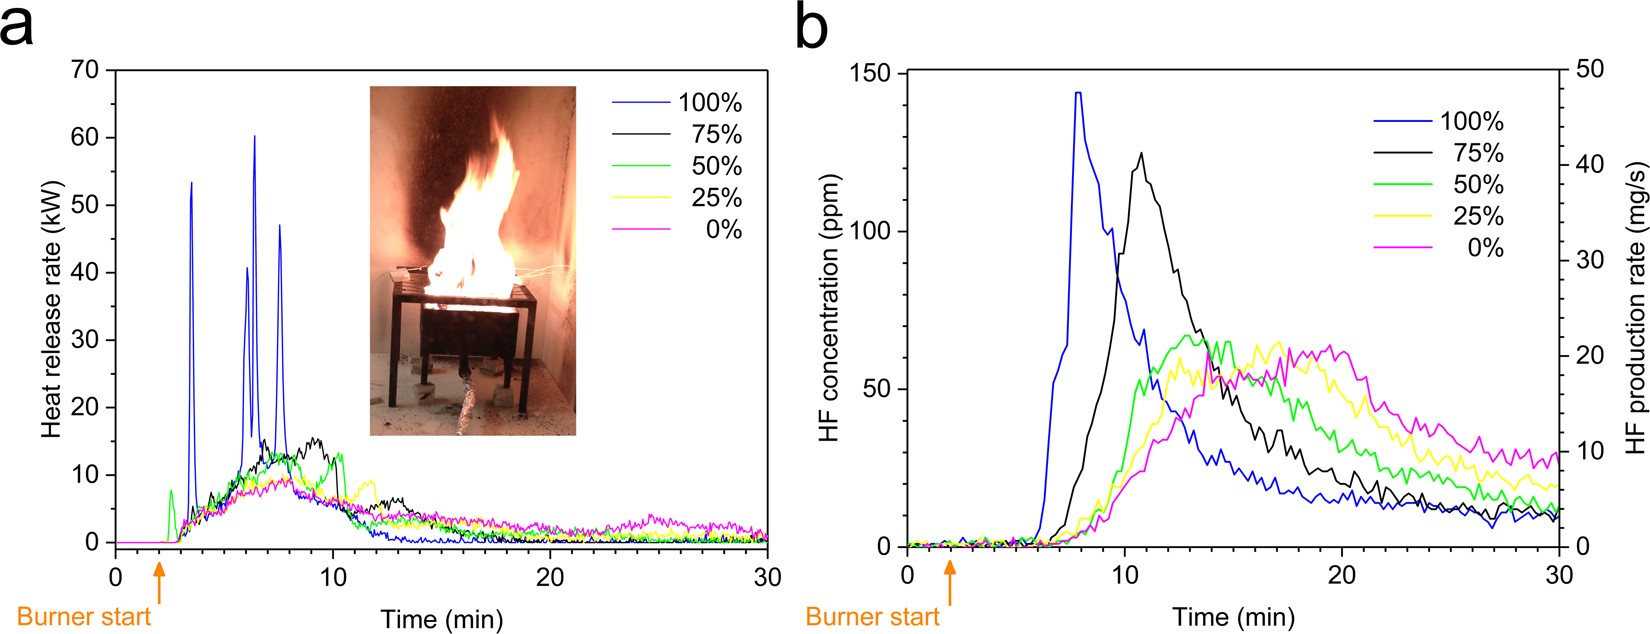 Toxic fluoride gas emissions from lithium-ion battery fires